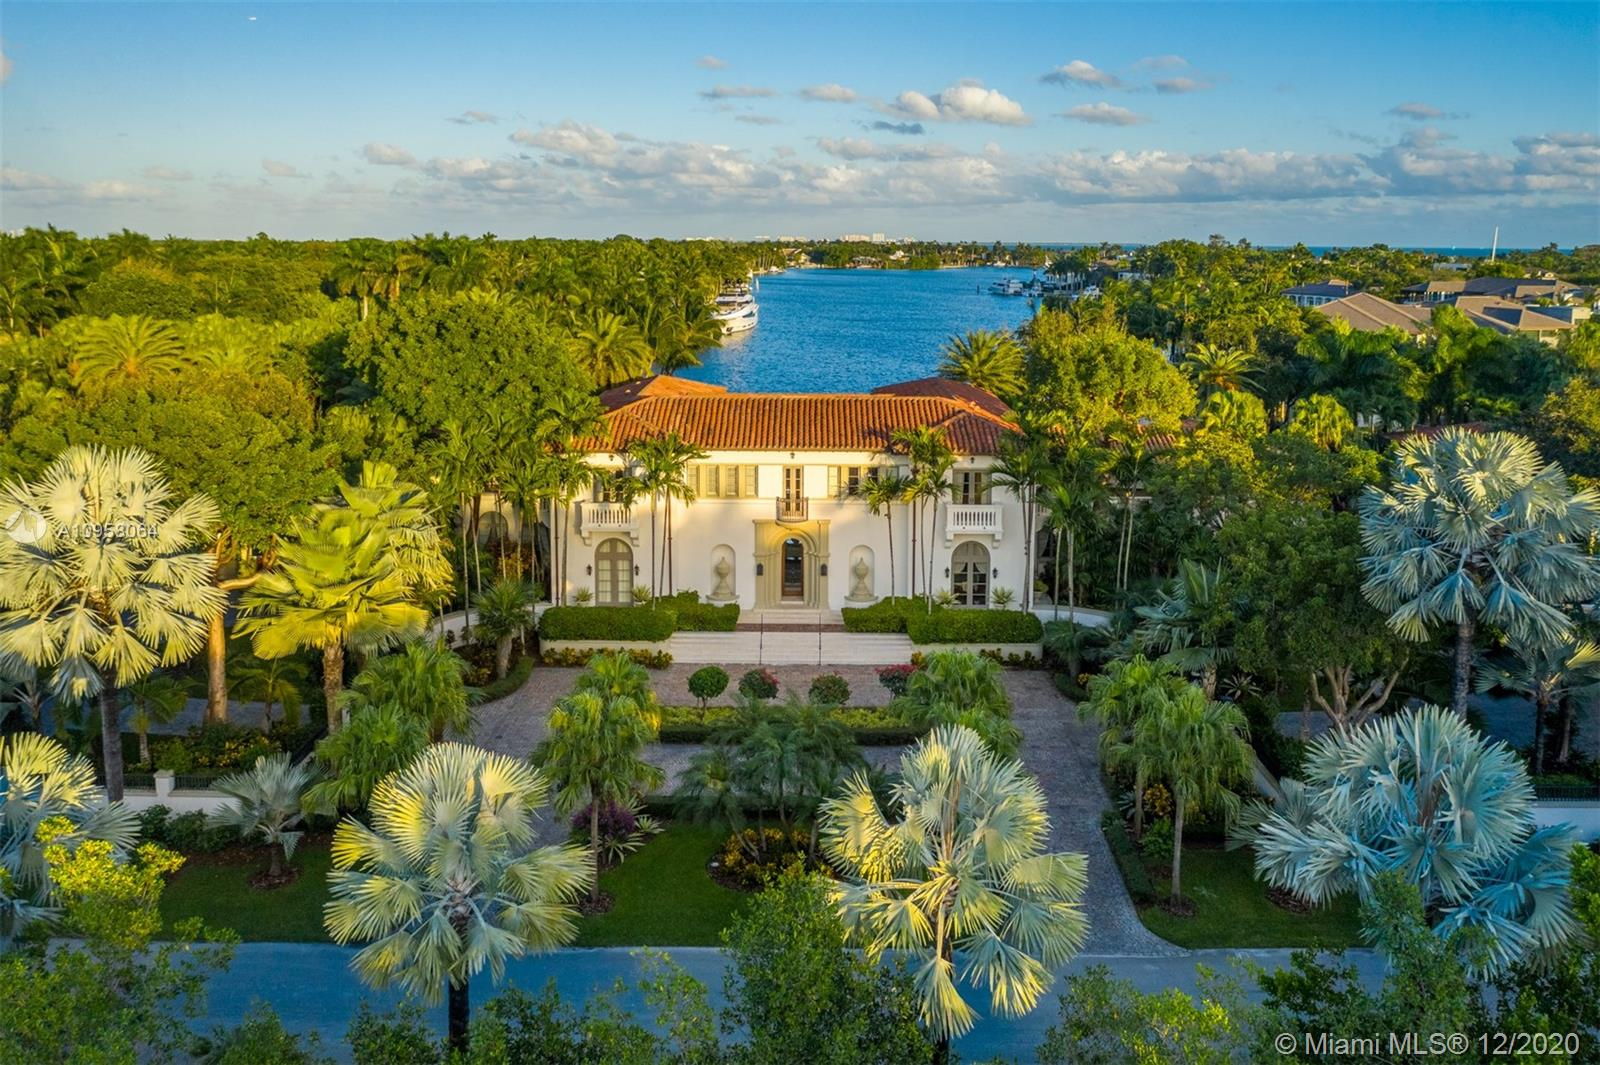 Waterfront neoclassical home located in Gables Estates. This magnificent property has 245 feet on the water with direct bay access, on 2.38 acres with over 674 species of palms and rare plantings.  Designed by Ralph Portuondo, the house features beautiful natural light and extraordinary finishes throughout. The estate also features a separate guest house and chapel.